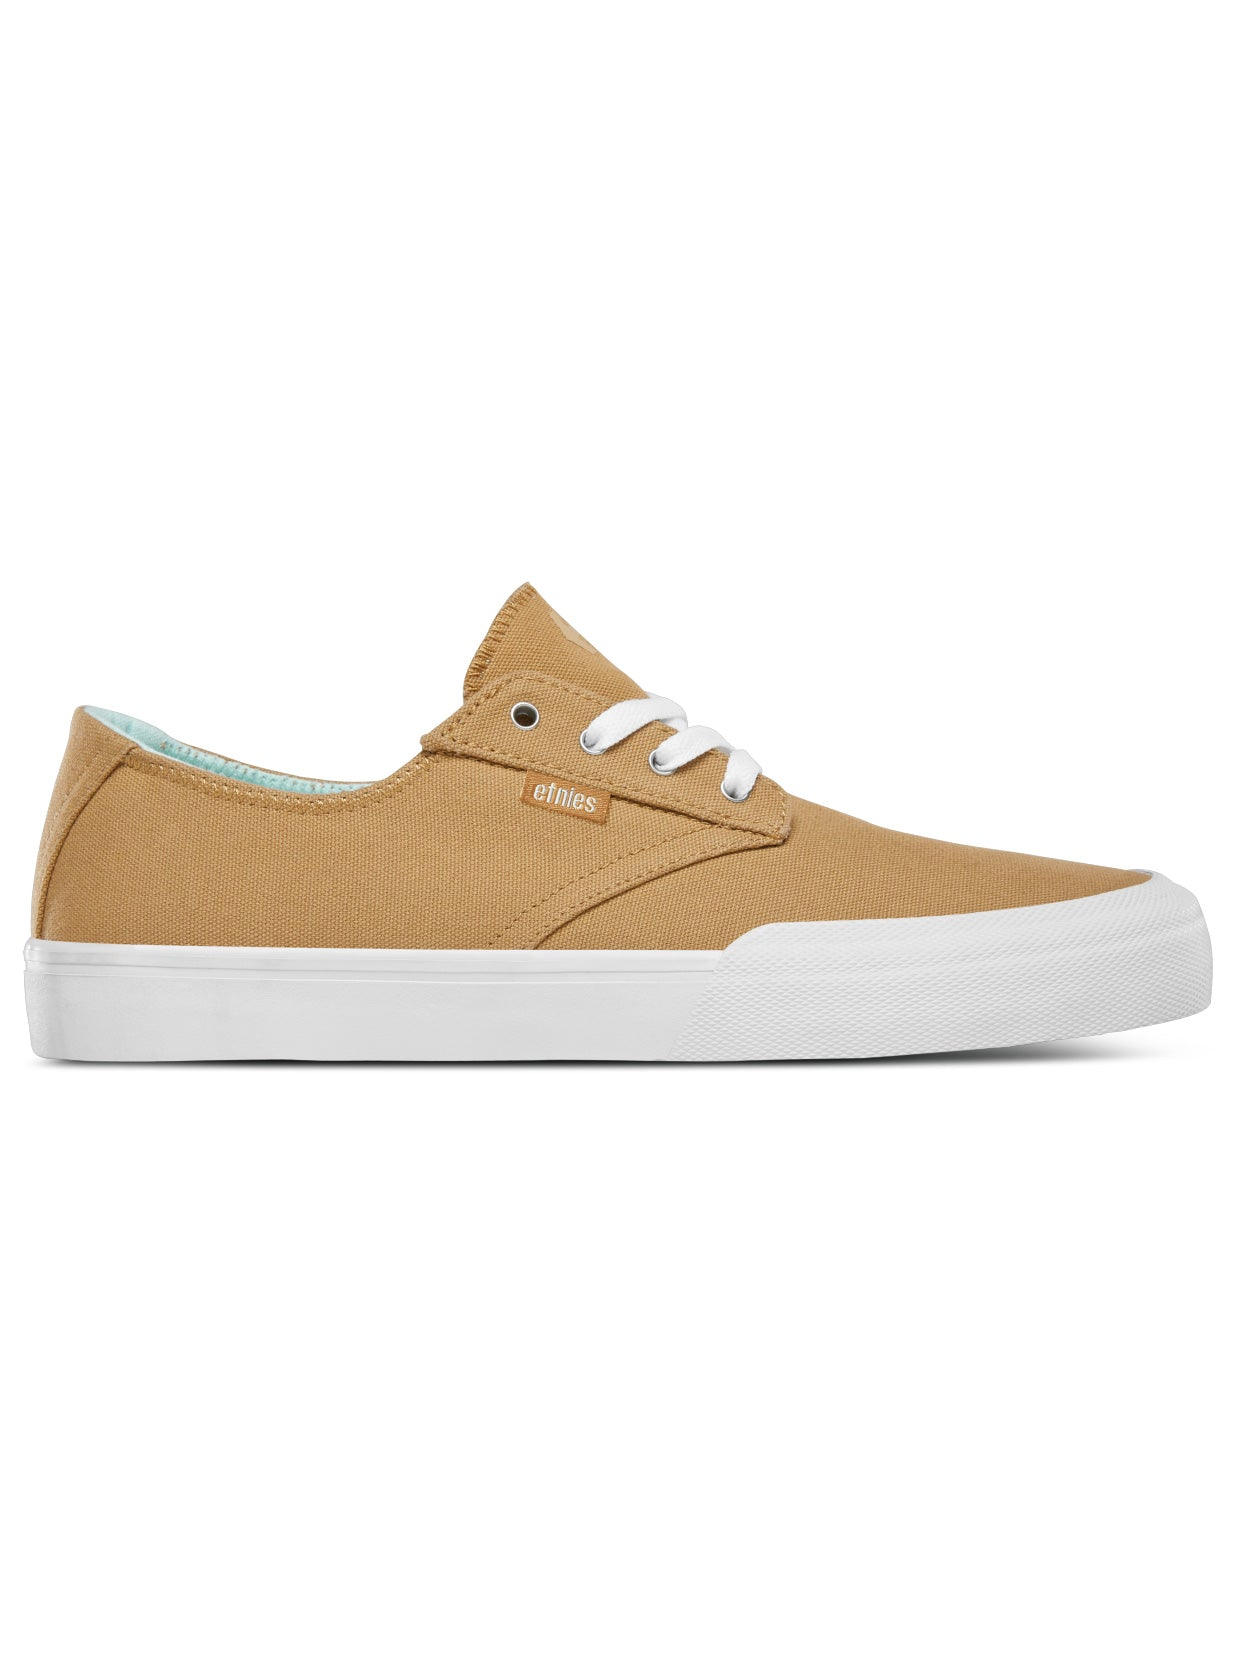 Jameson Vulc LS Shoes